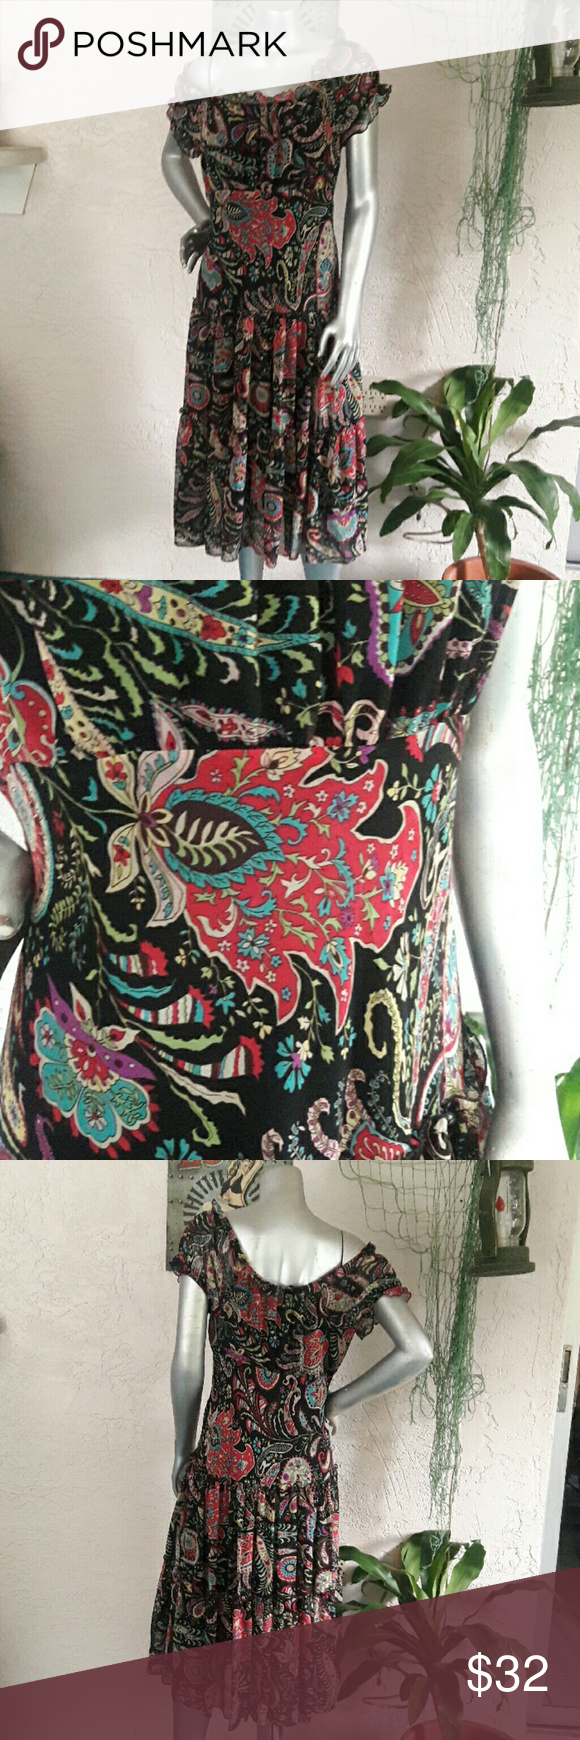 Jeccica Howard Paisley Frill Chiffon Dress Brand Jessica Howard Size 12P 100%polyester  Perfect condition  Beautiful Paisley Chiffon wear it off the shoulder or on for a different silhouette. Lined in black with sheer chiffon overlay. Lasted Prairie style skirt and elastic in neck and sleeves. So soft and pretty Bundles available with discounts Jessica Howard  Dresses Midi